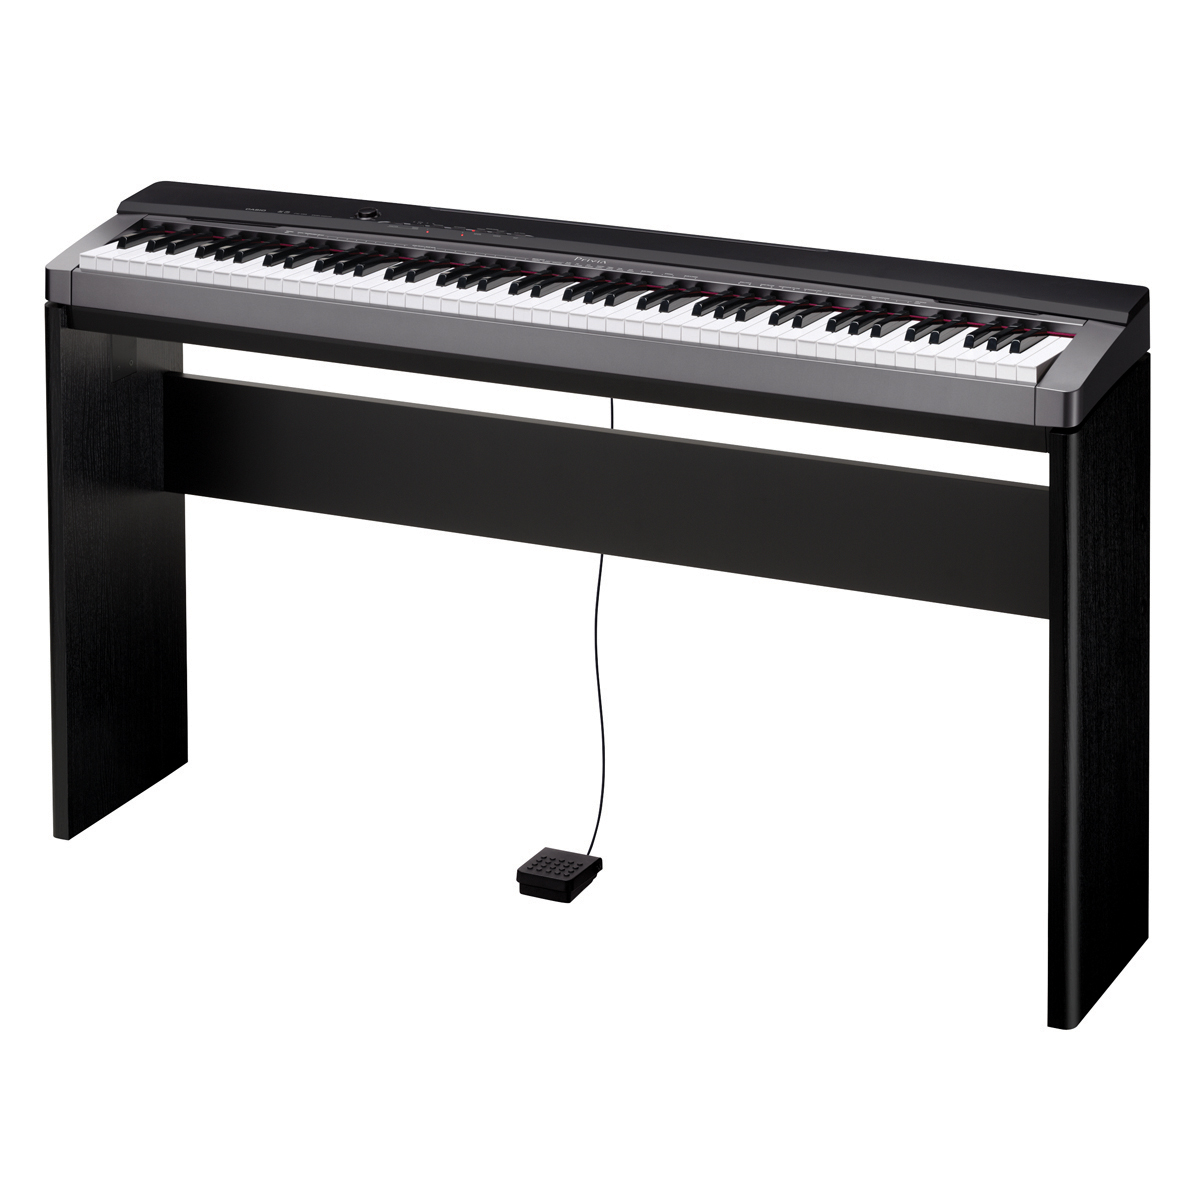 casio cs67bk keyboard stand for px130 px150 px330 and px350 rh walmart com casio privia px-130 service manual casio privia px 130 manual pdf